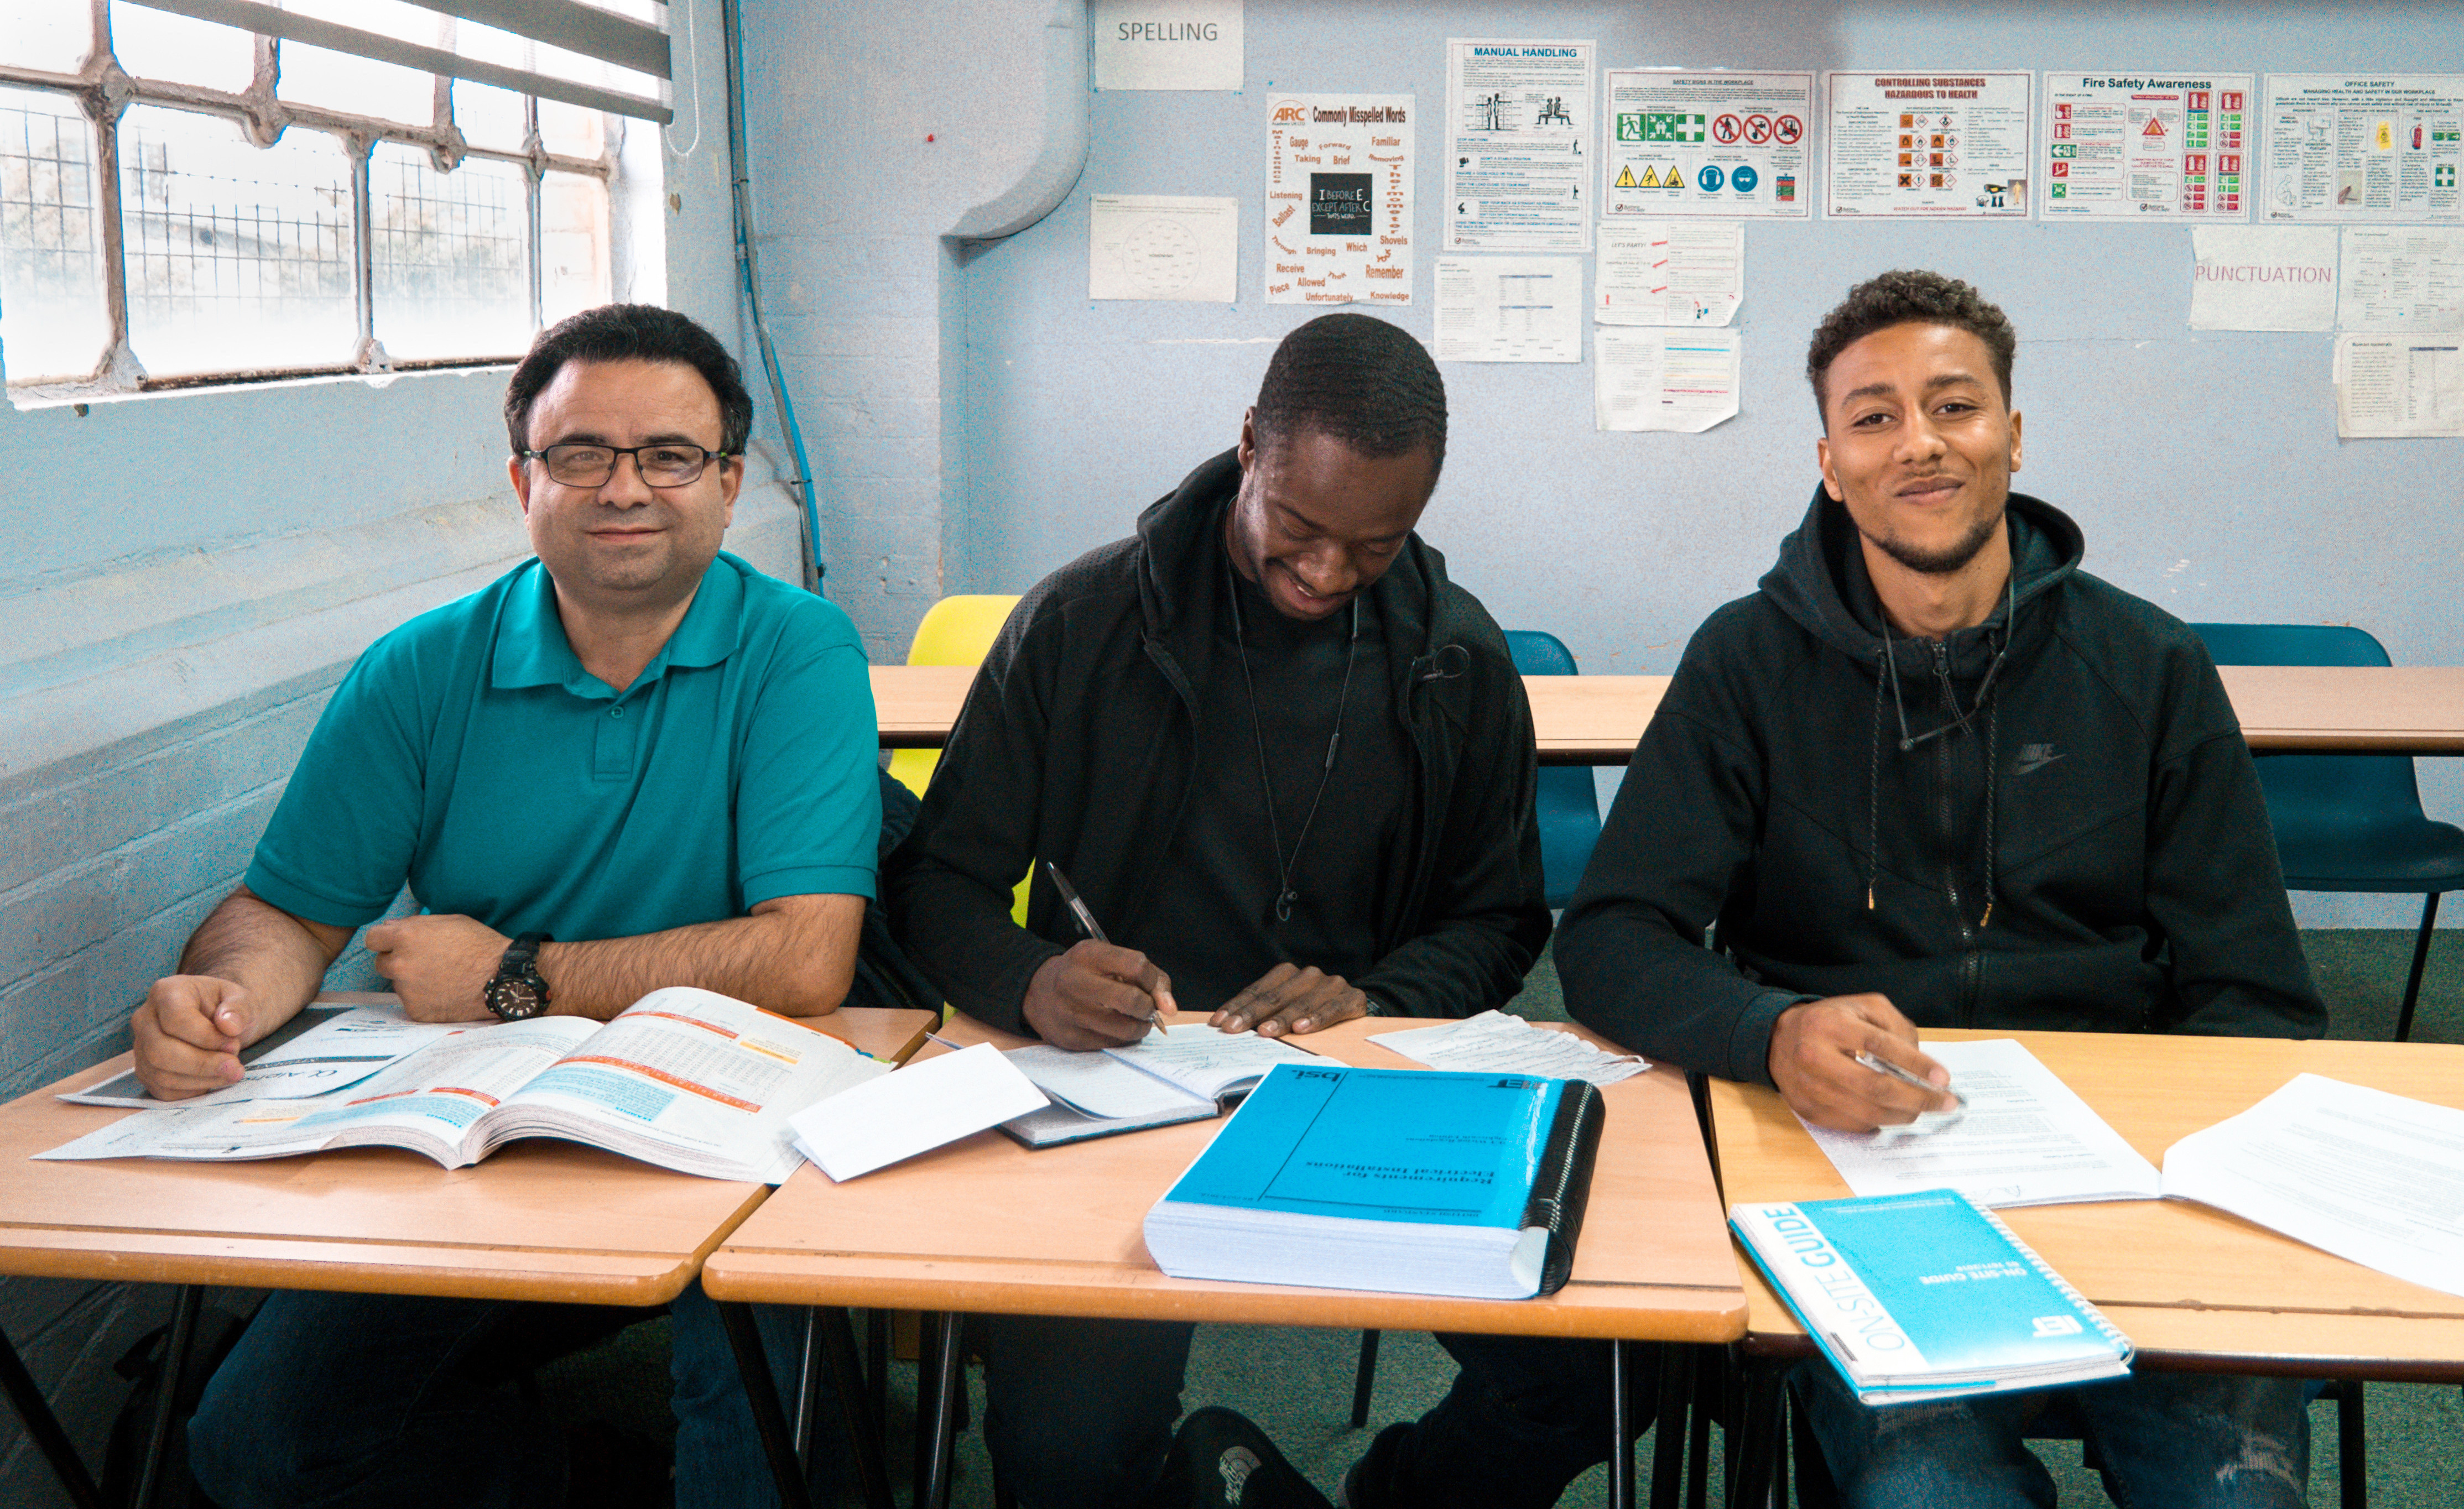 Hussein, Claude & Leo in training as electricians